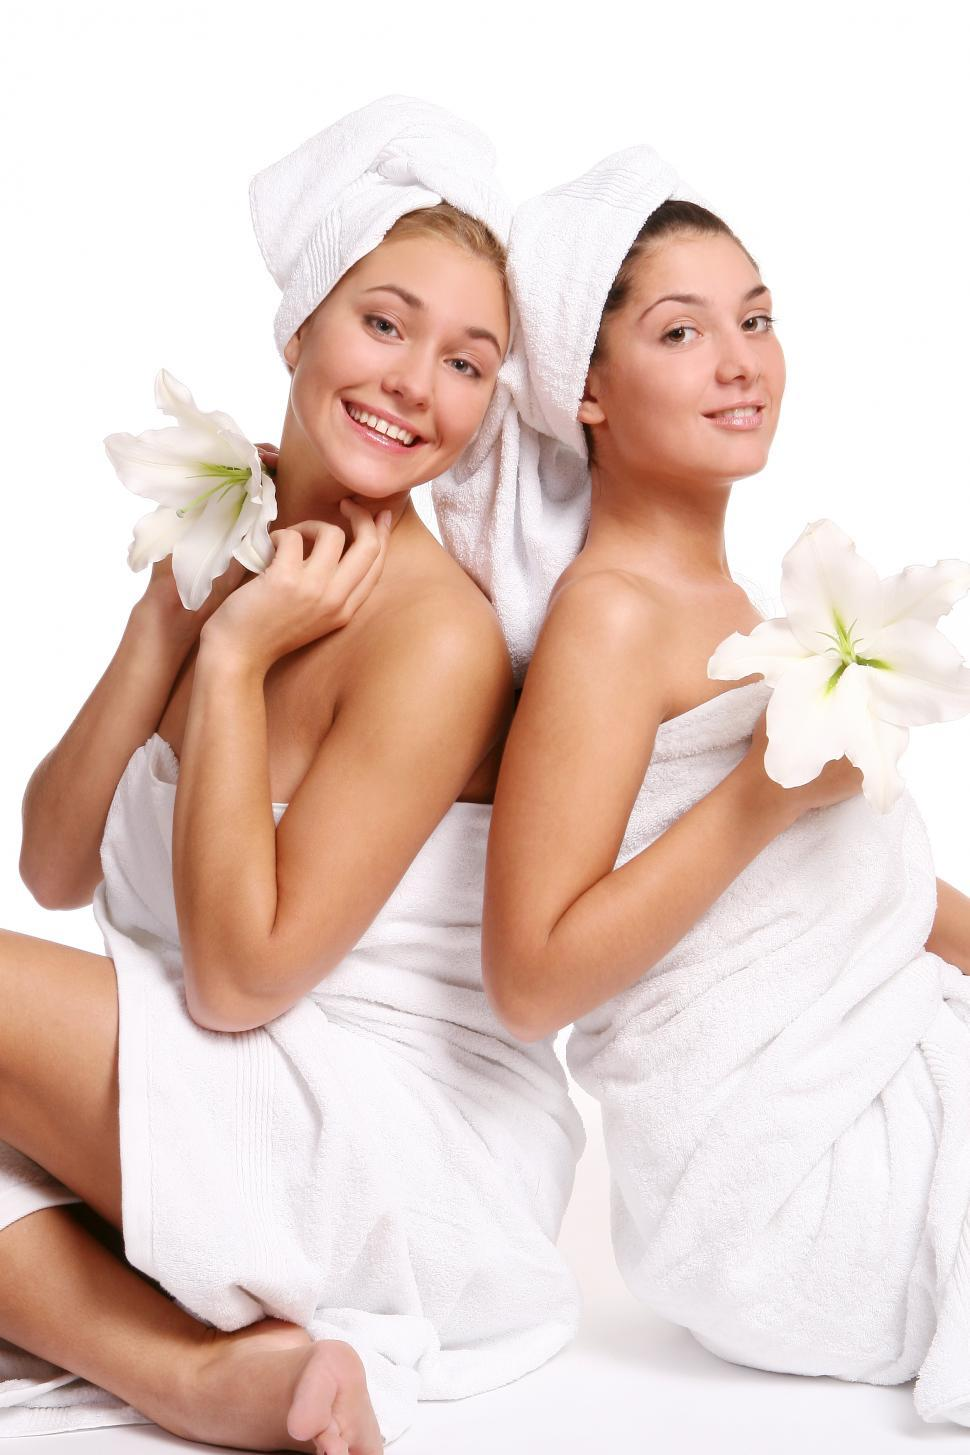 Download Free Stock Photo of Two women in towels during spa day